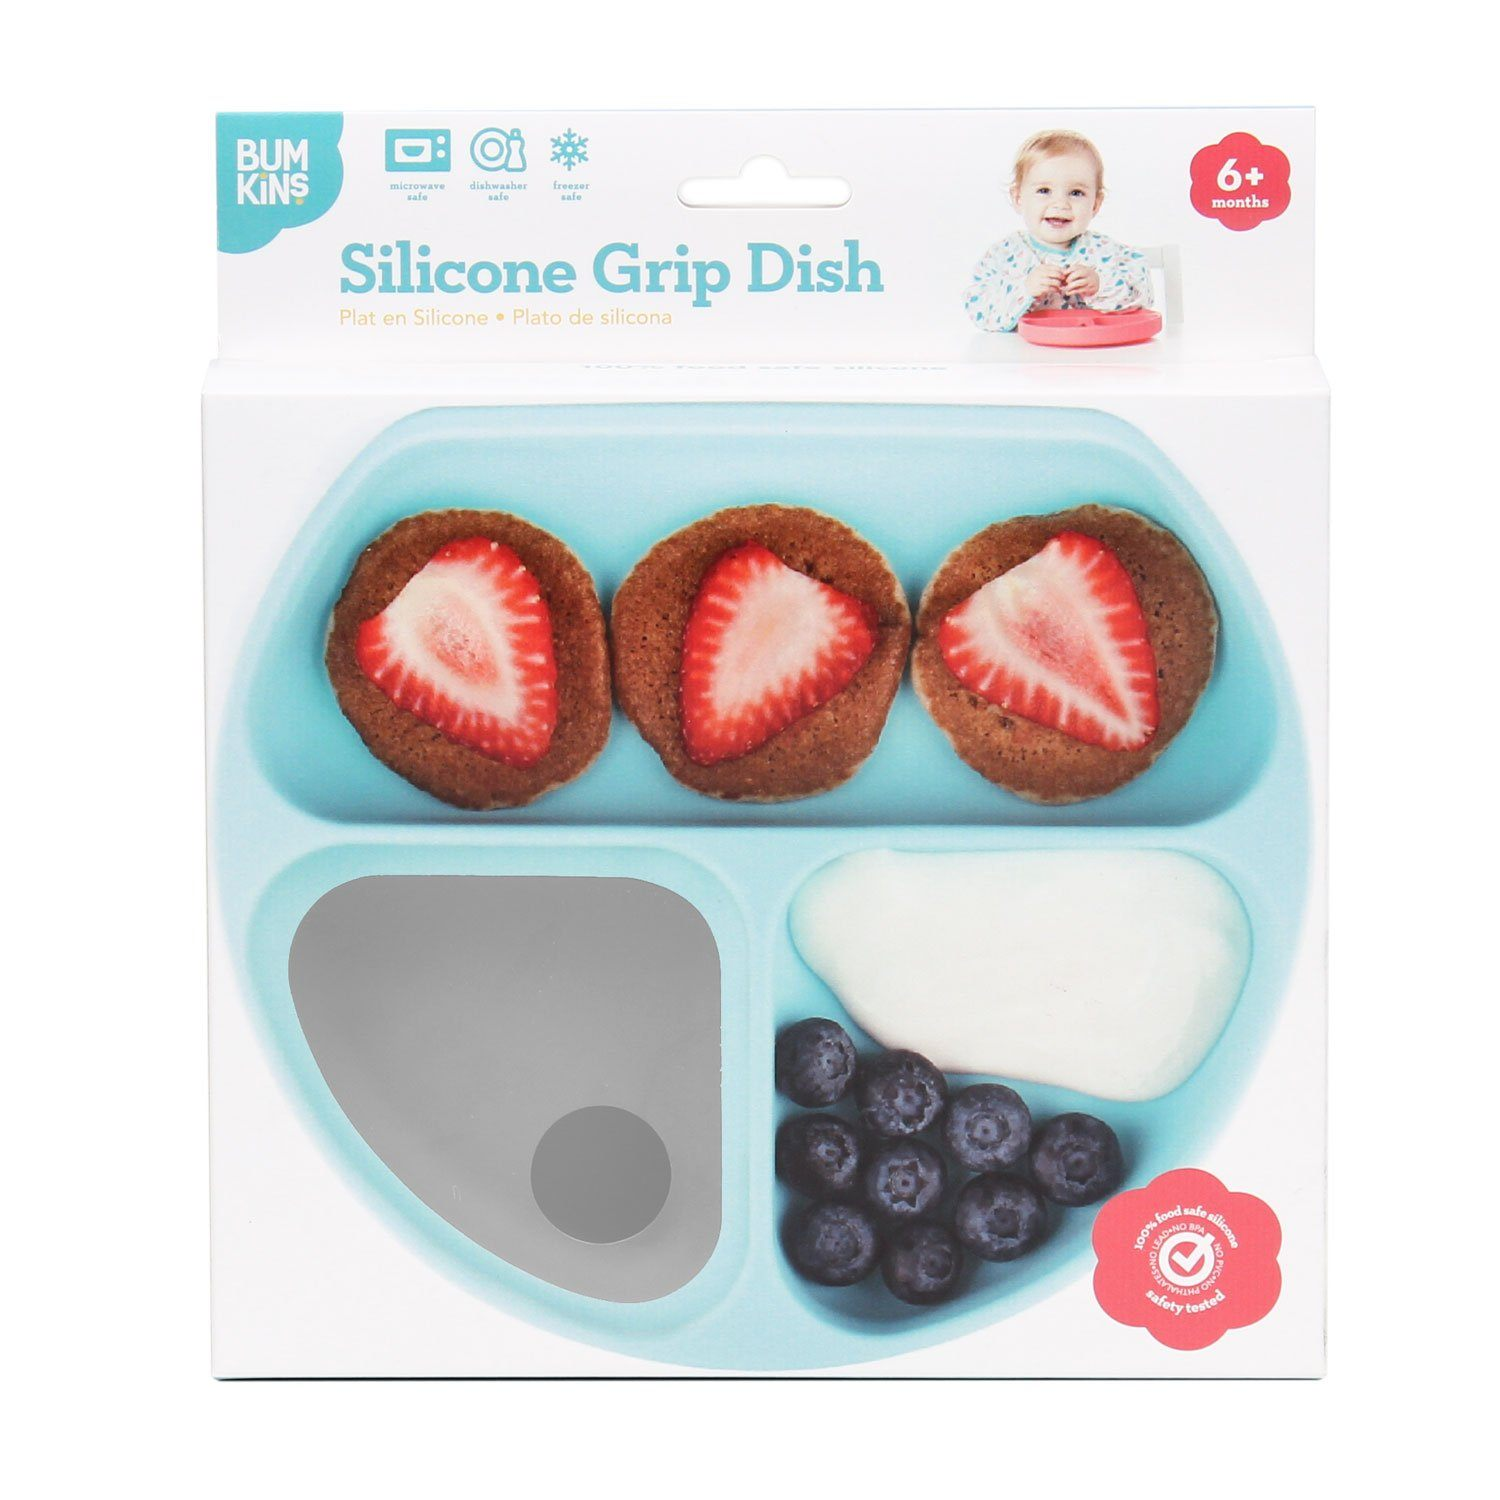 Silicone Grip Dish - Project Nursery